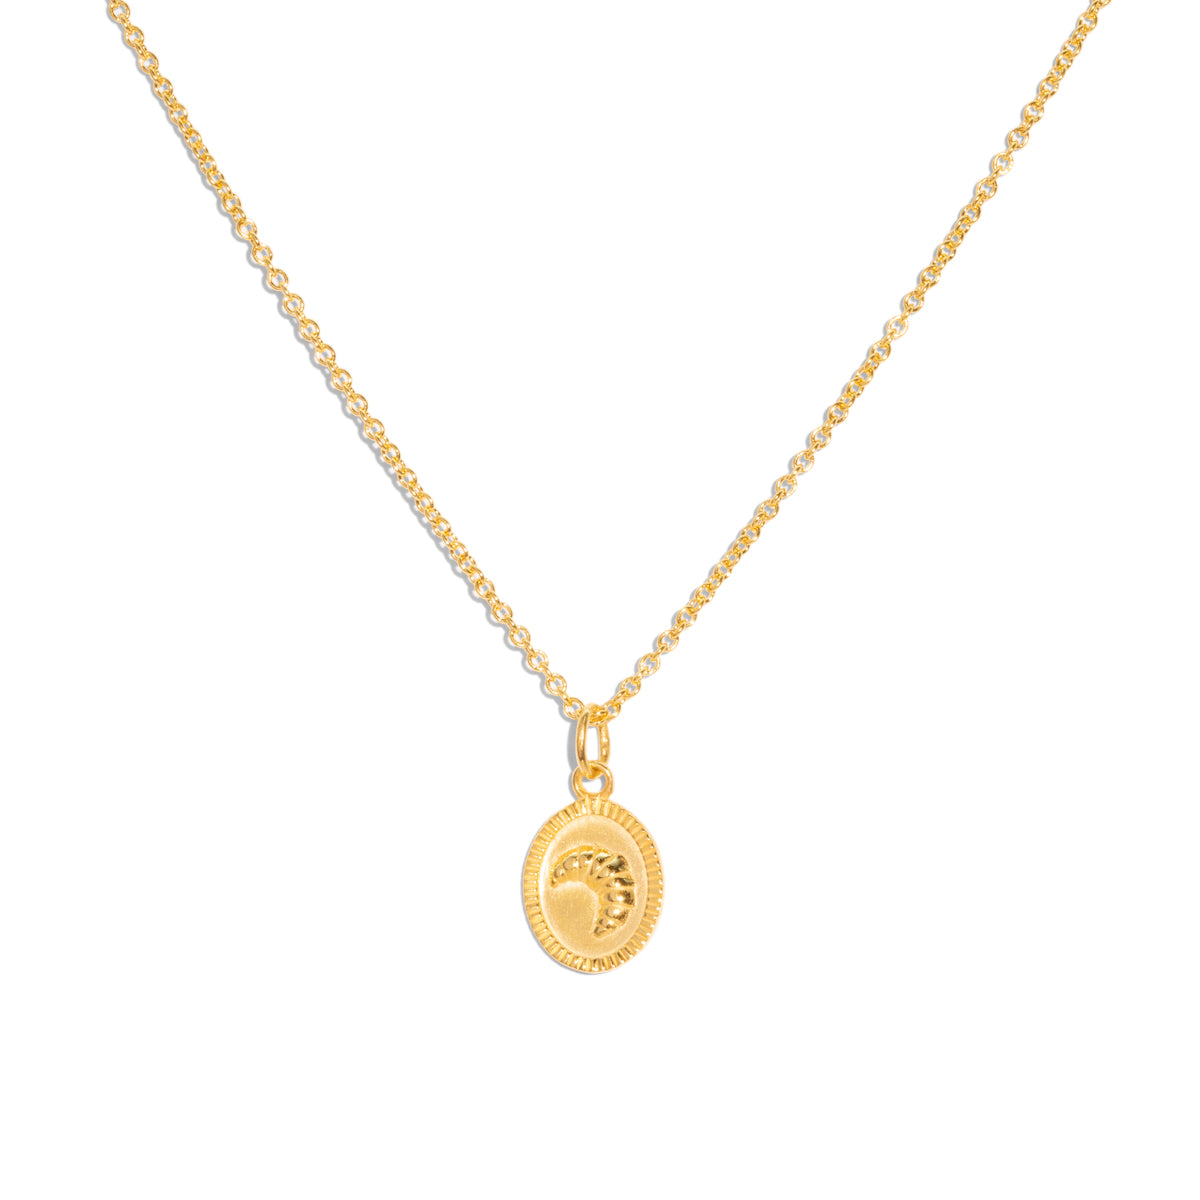 The Gold Croissant Pendant Necklace